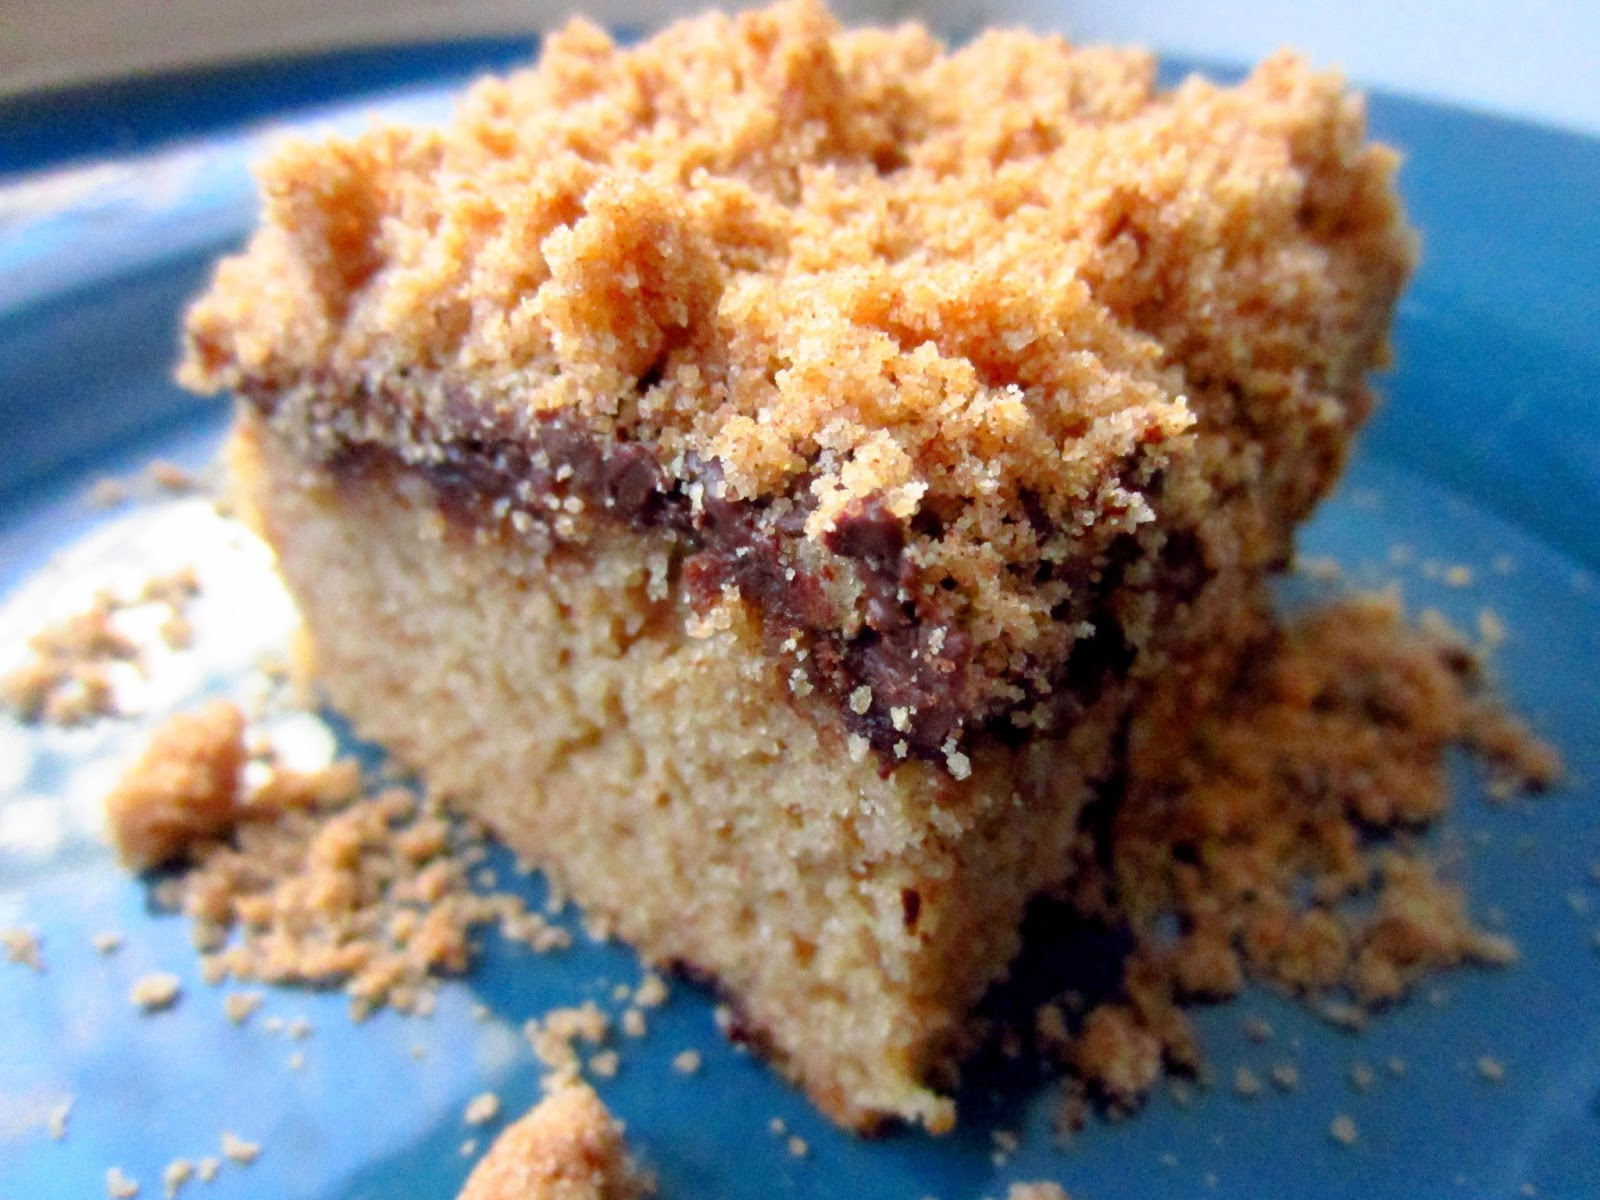 This Gluten-free Life : Chocolate Chip Coffee Cake